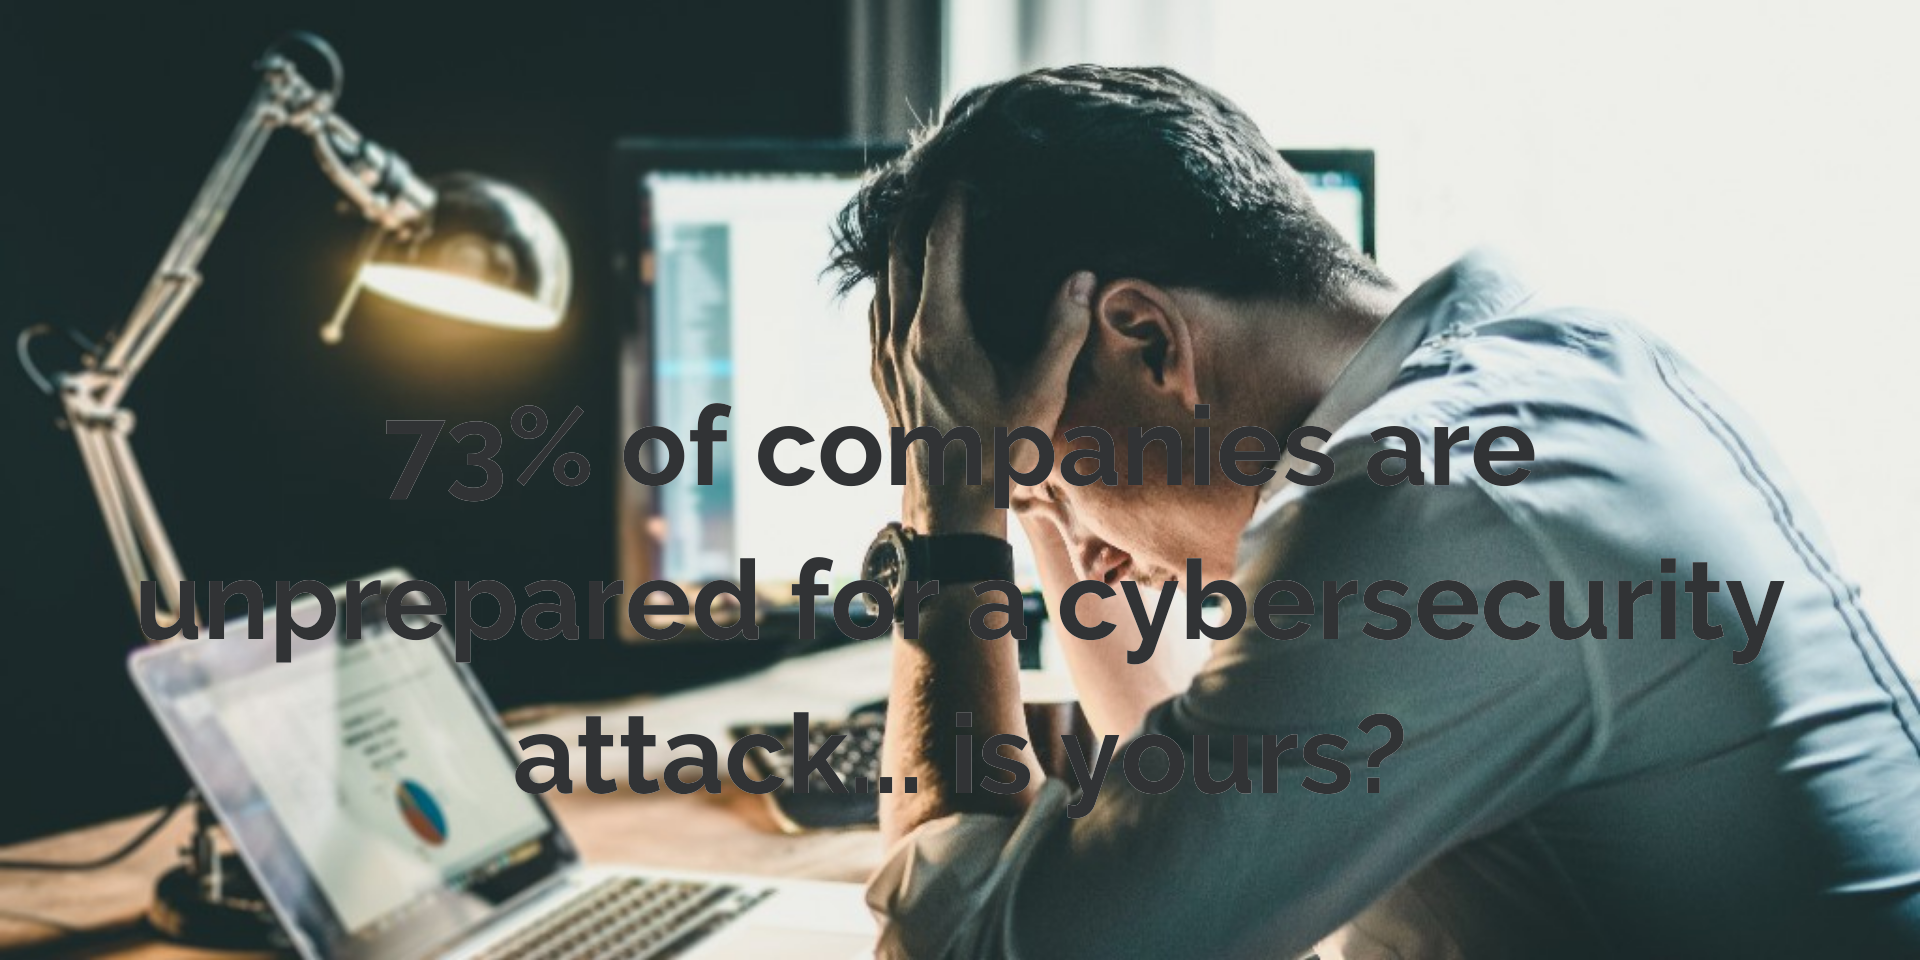 73% of companies are unprepared for a cybersecurity attack... is yours_